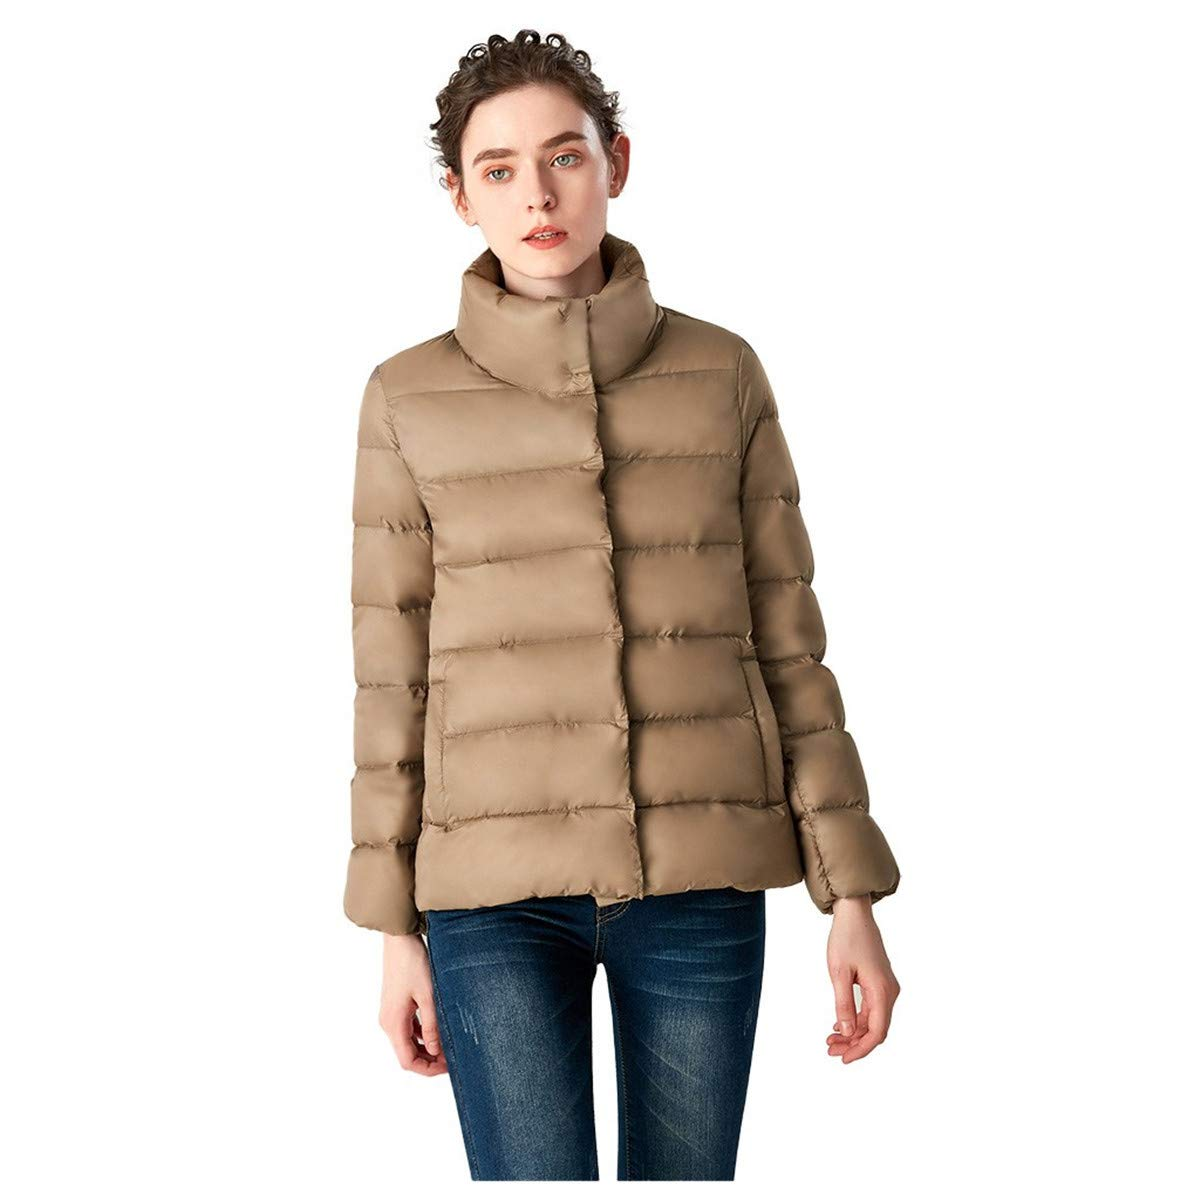 Thenxin Womens Winter Warm Short Down Jacket Stylish Lapel Lightweight Puffer Coats(Khaki,XXL) by Thenxin